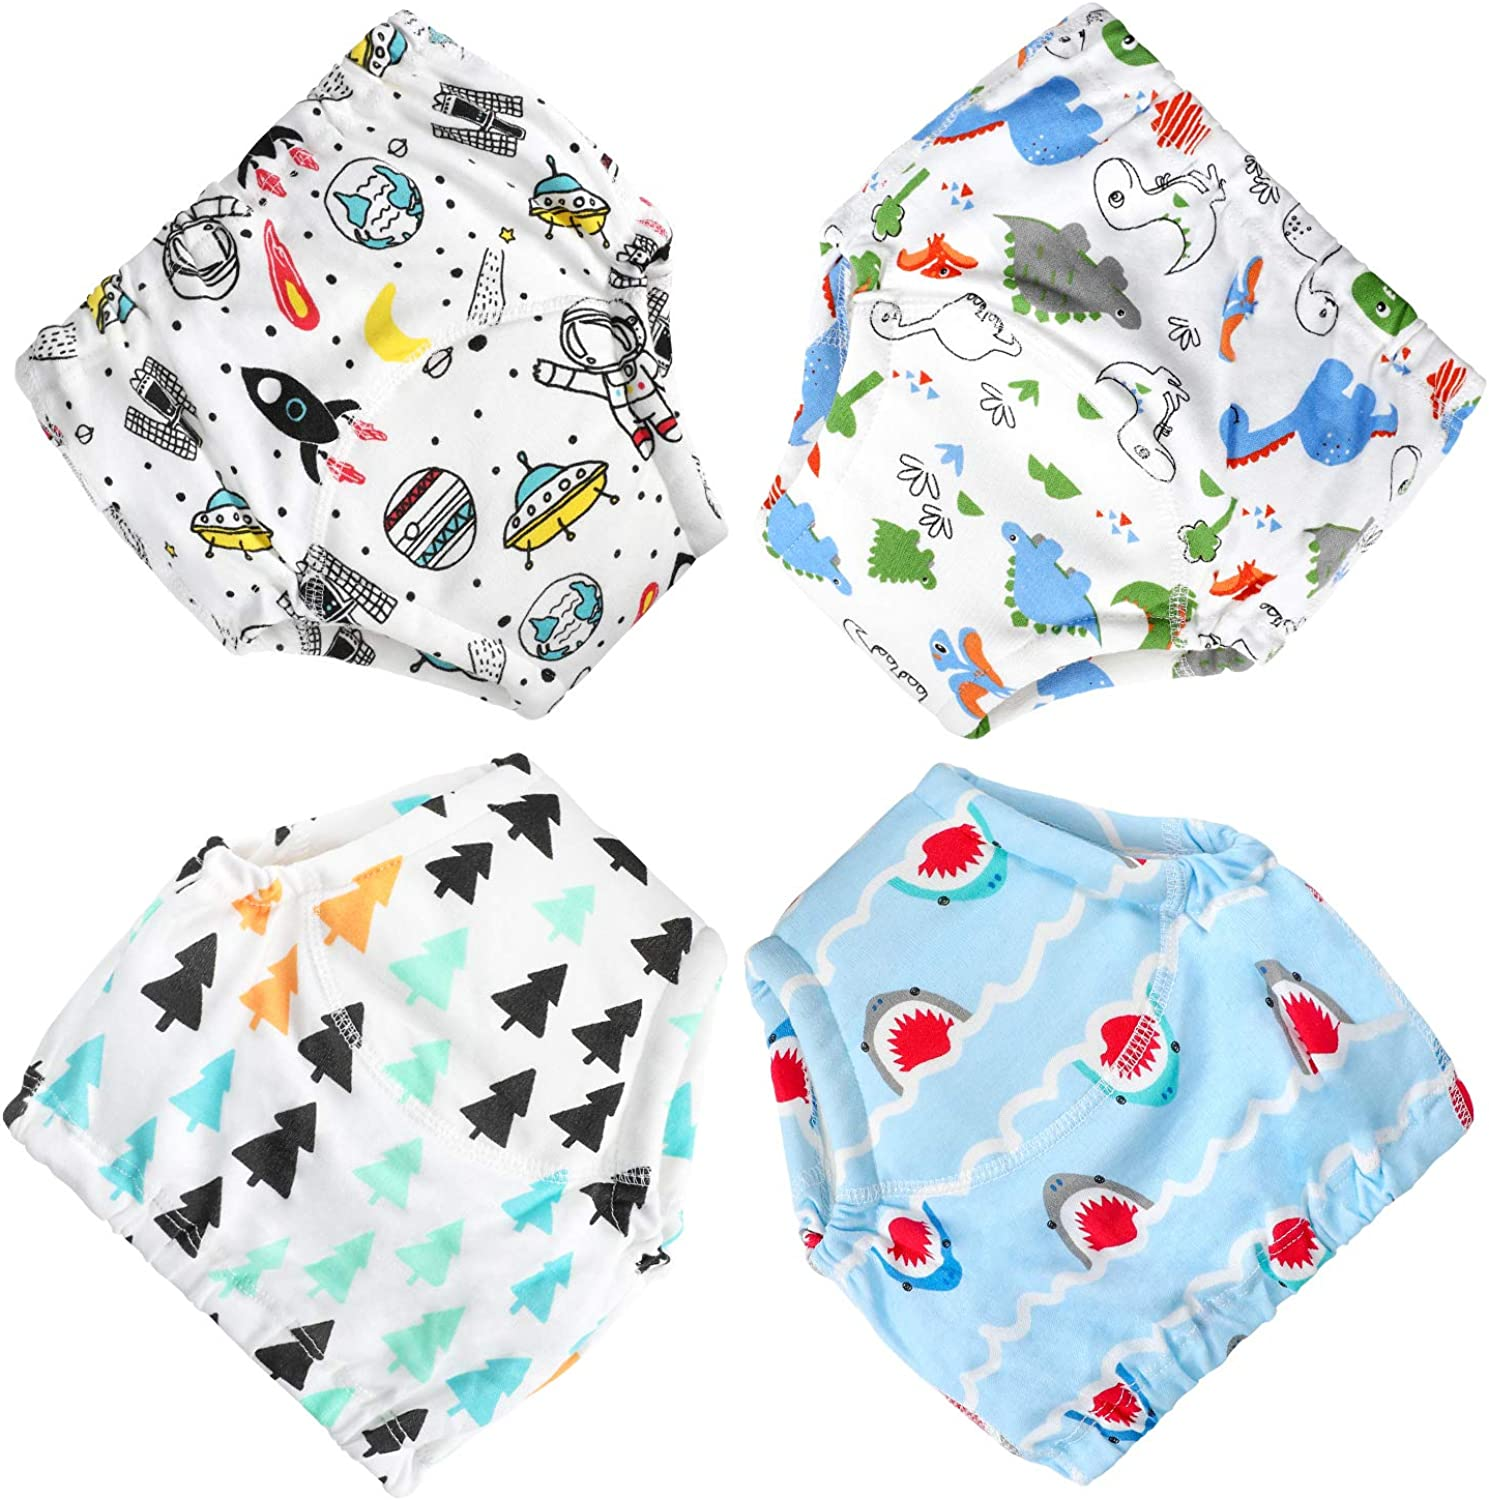 Washable and Reusable-2T-Boys Cotton Training Pants Toddler Potty Training Underwear for Boys and Girls